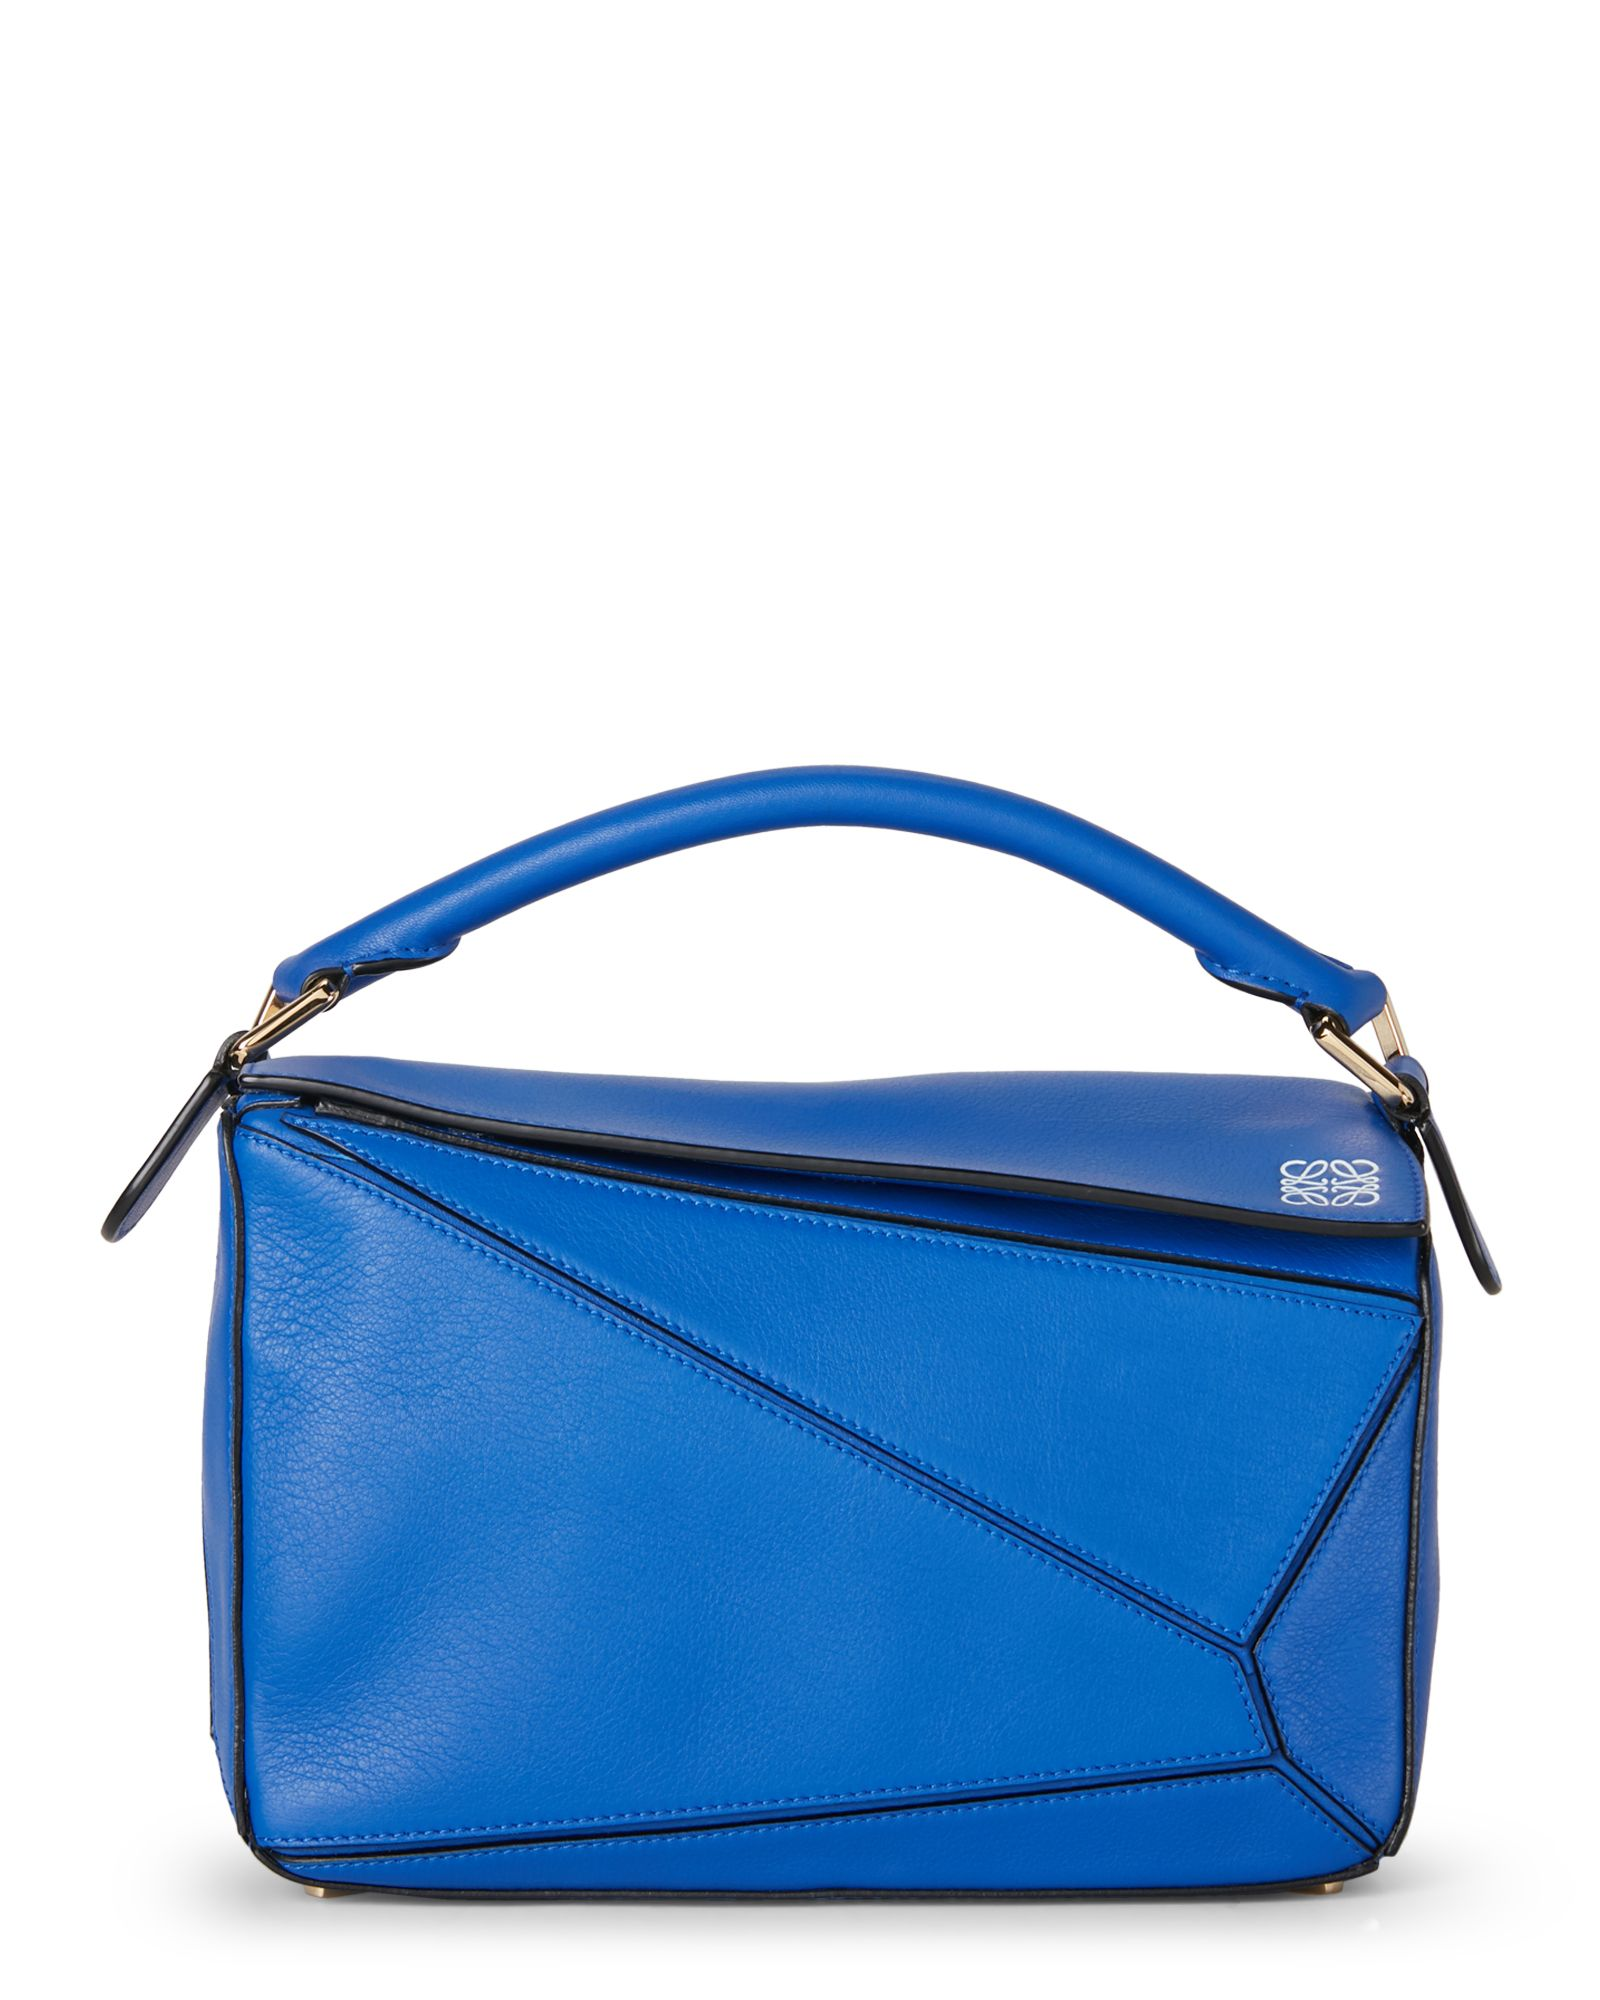 Loewe Electric Blue Puzzle Small Bag